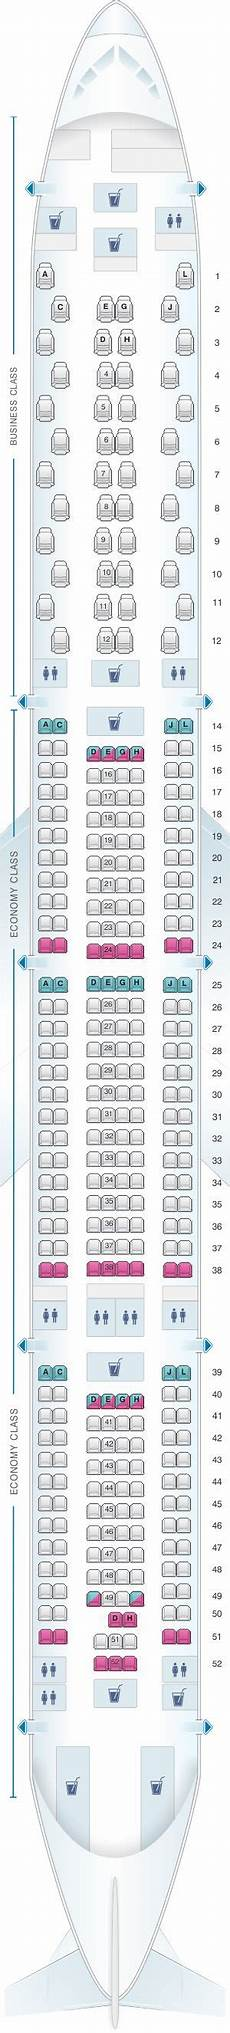 Iberia 2622 Seating Chart 10 Best Iberia Seat Maps Images On Pinterest Aircraft